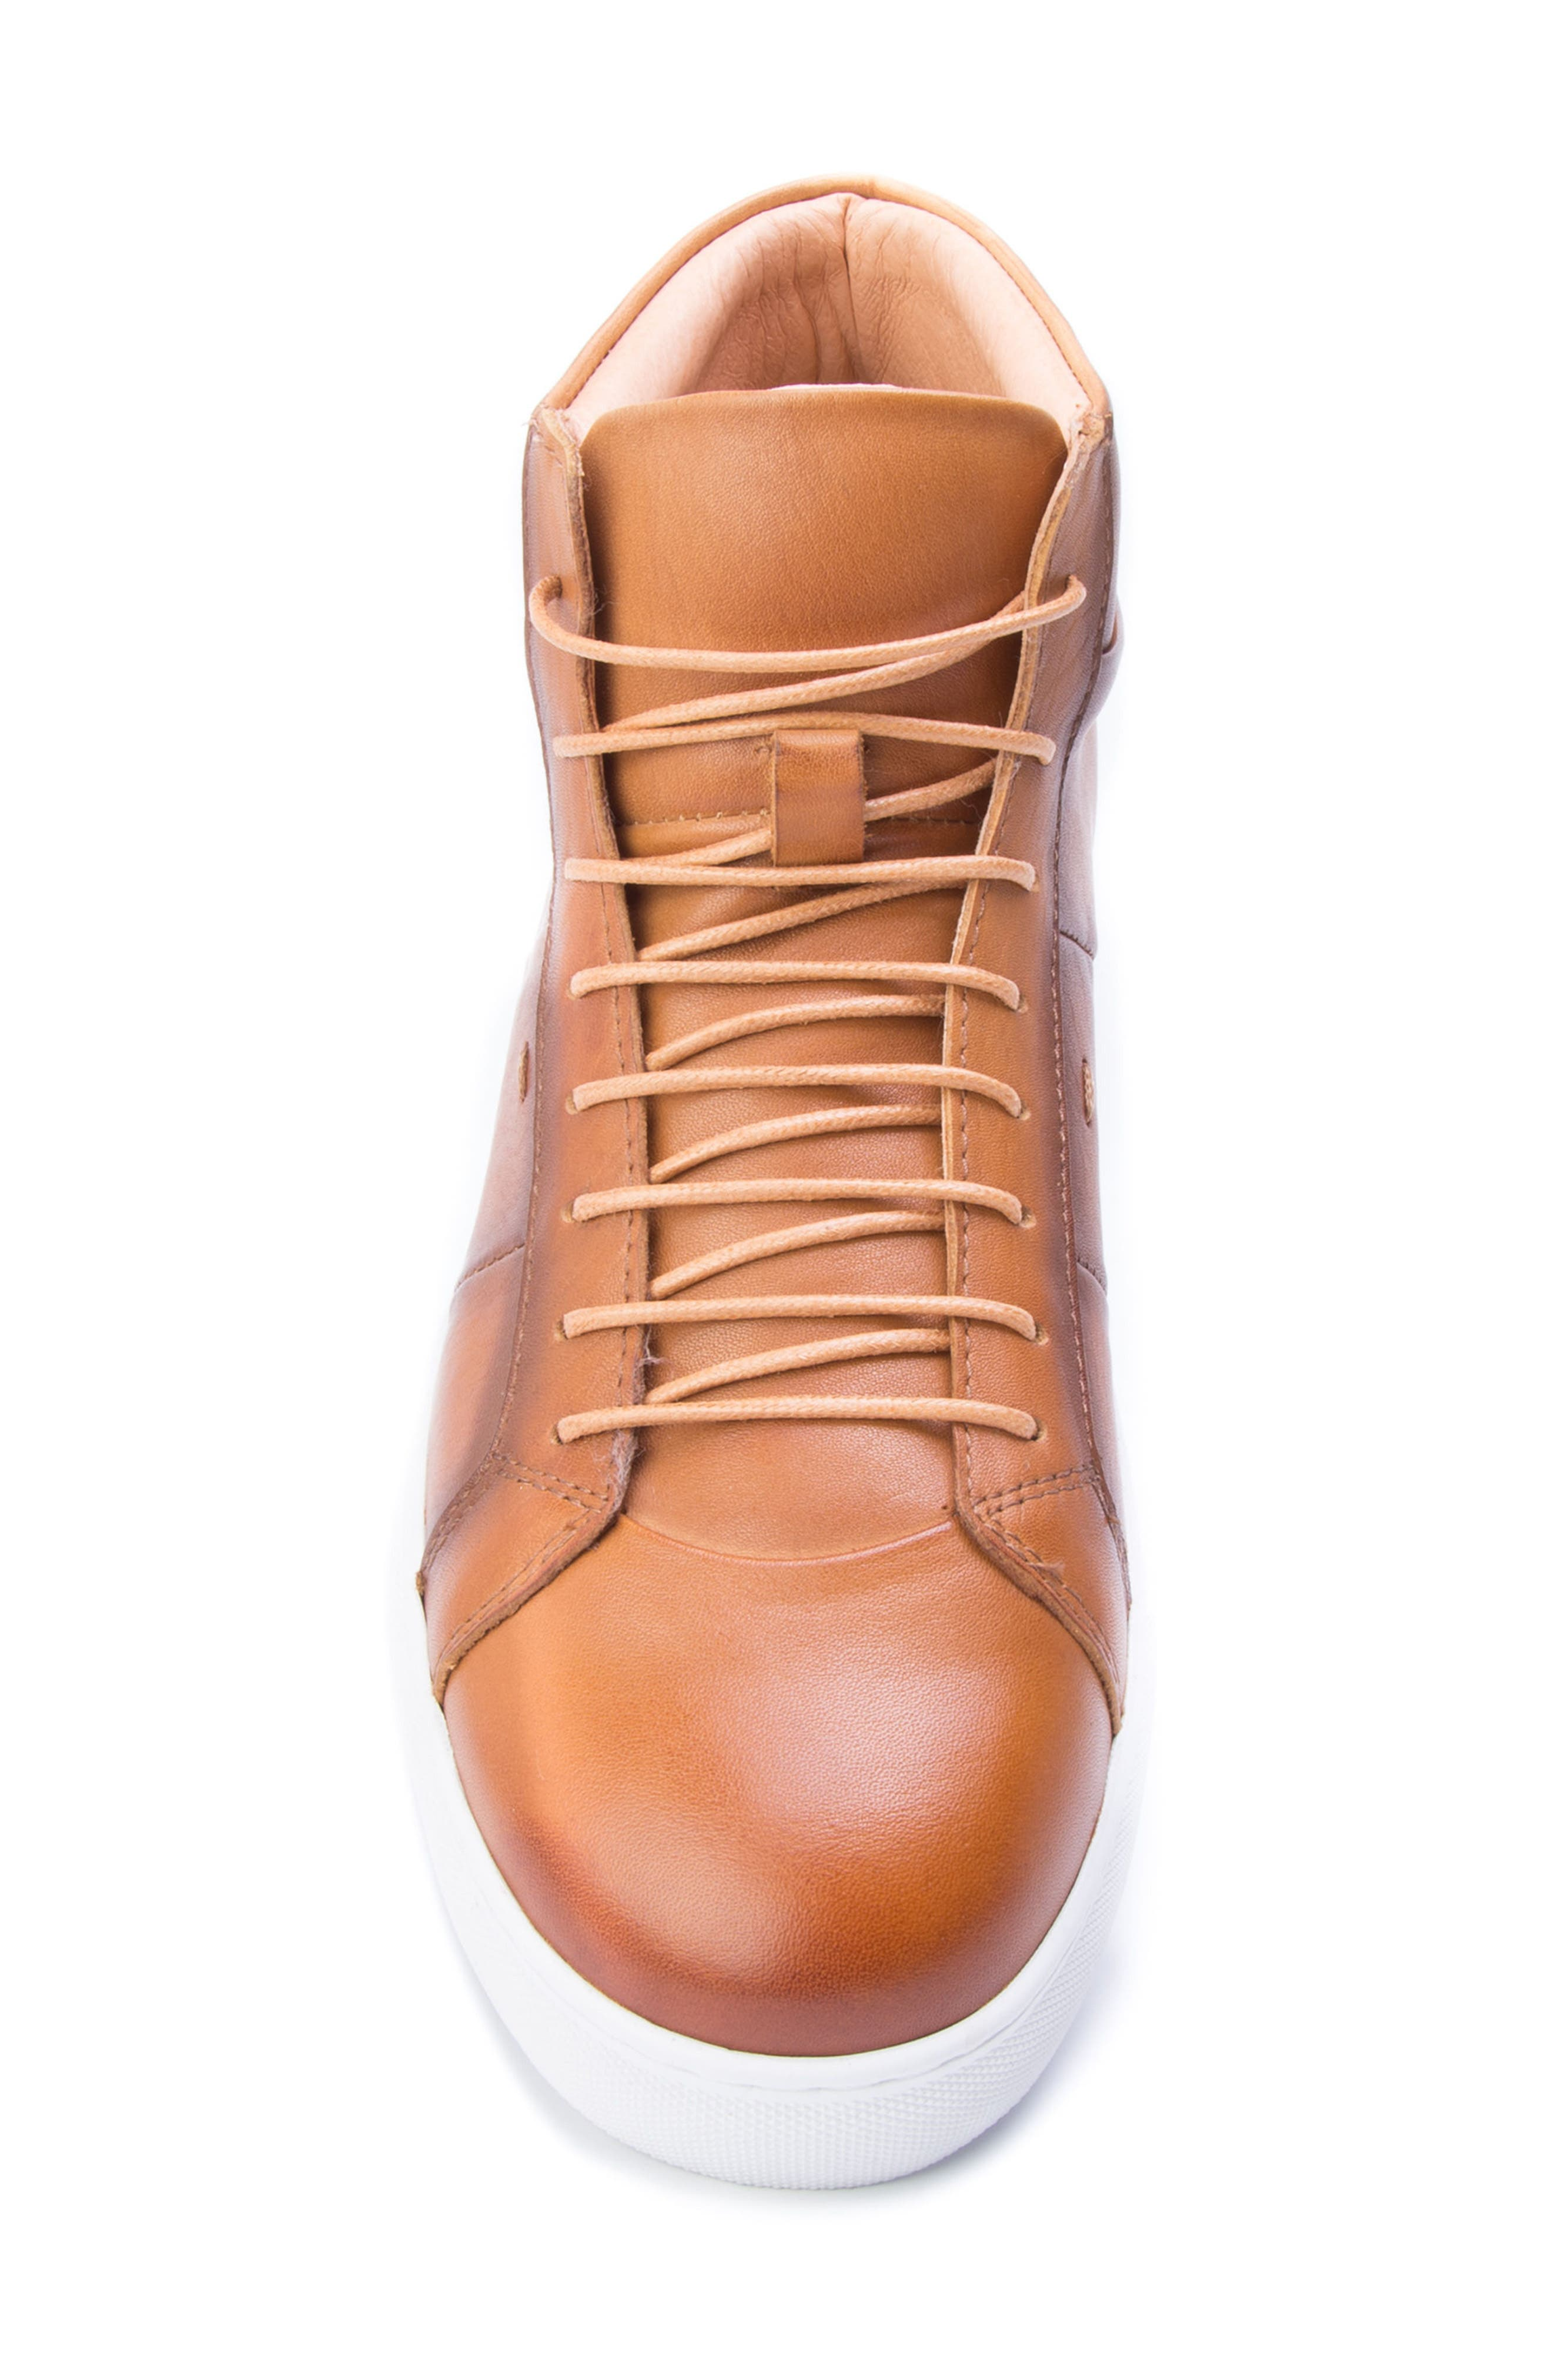 Phaser High Top Sneaker,                             Alternate thumbnail 5, color,                             Cognac Leather